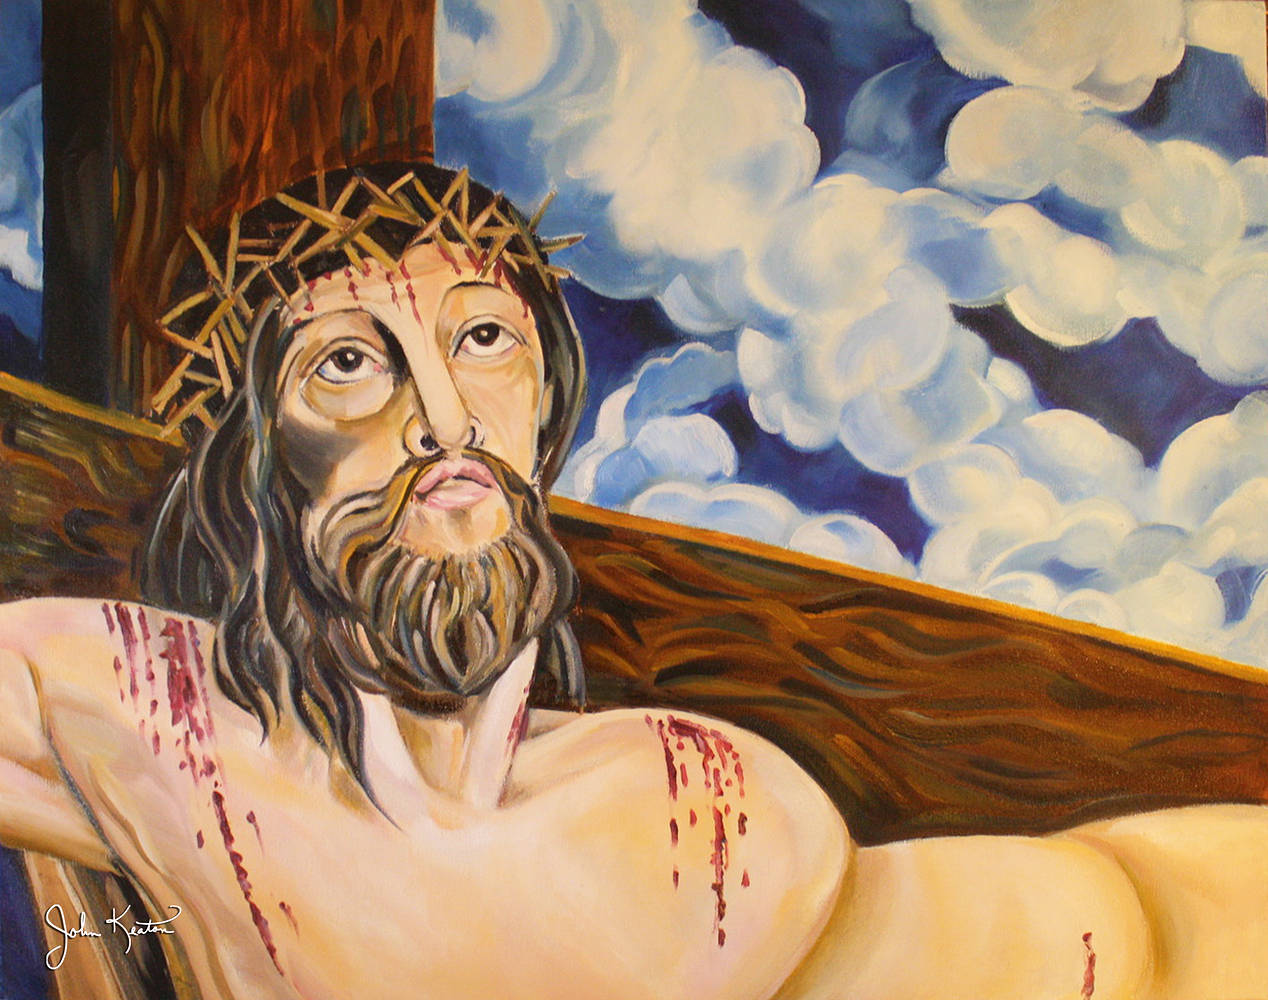 The Crucifixion by John Keaton